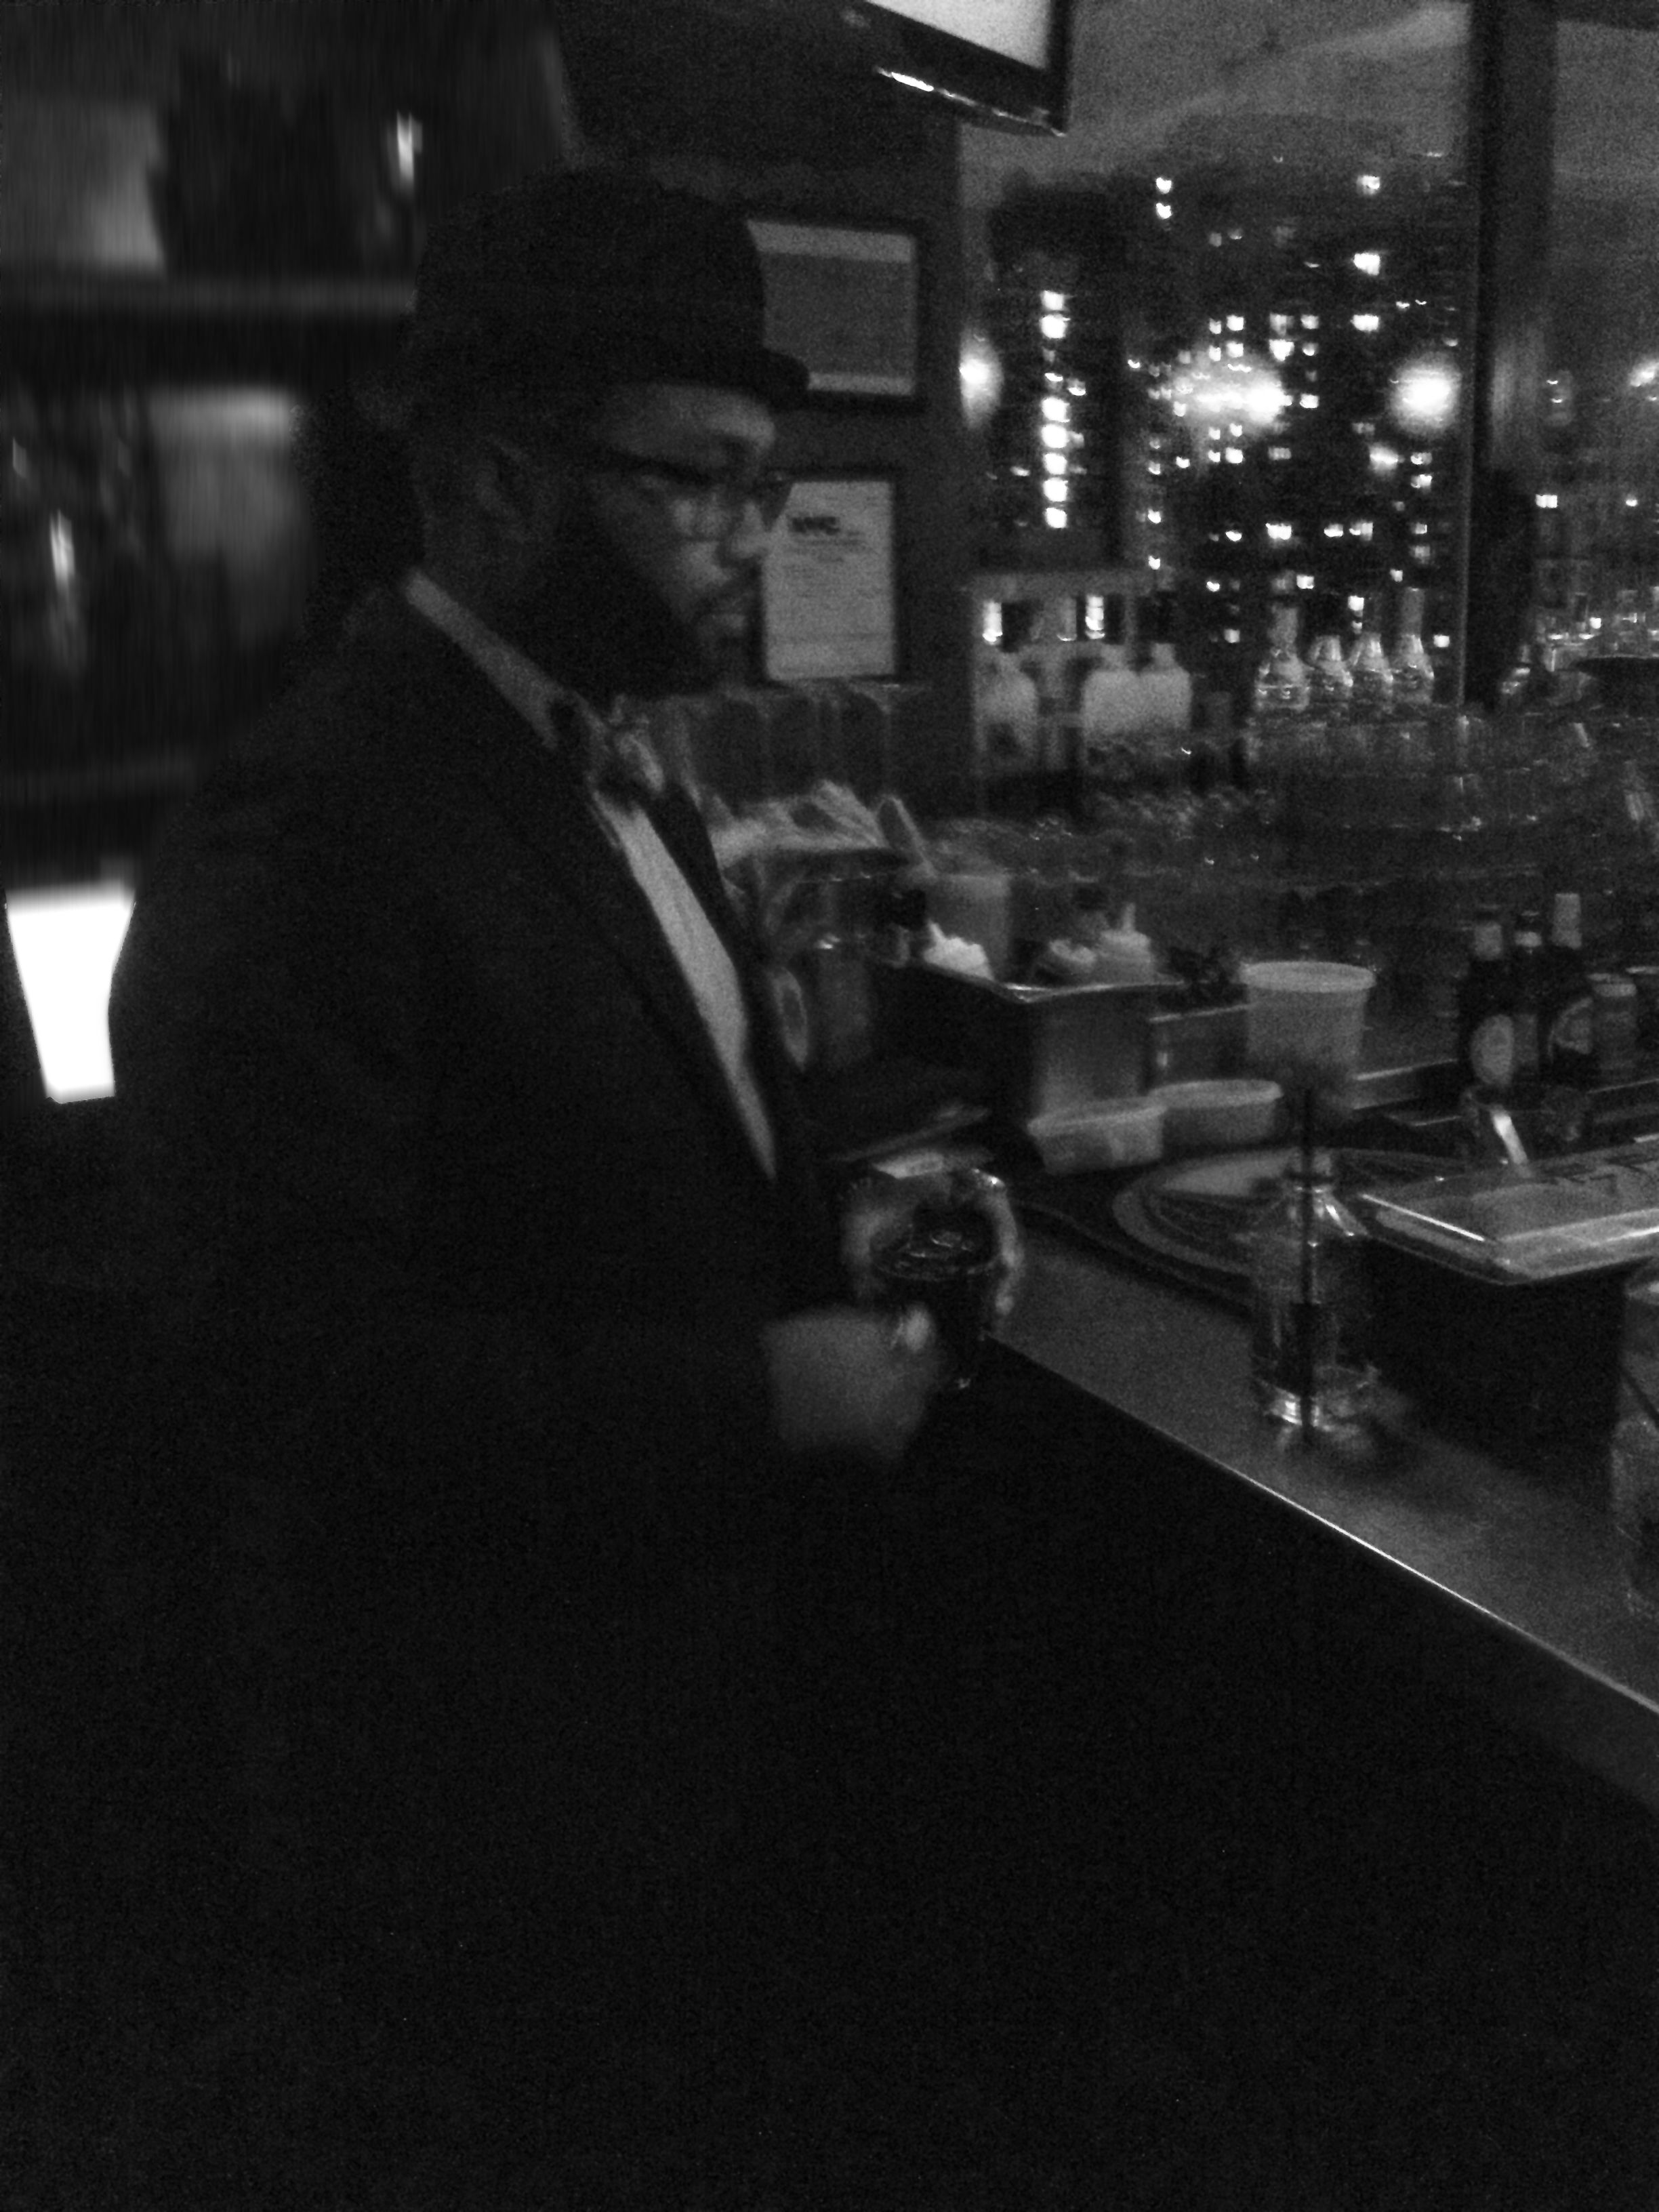 Tival Williams Of Soho Social Club Ordering Beverages Before Viewing House Of Roderick Fashion Week 2013 Bts Empire Hotel Social Club Empire Hotel Scenes